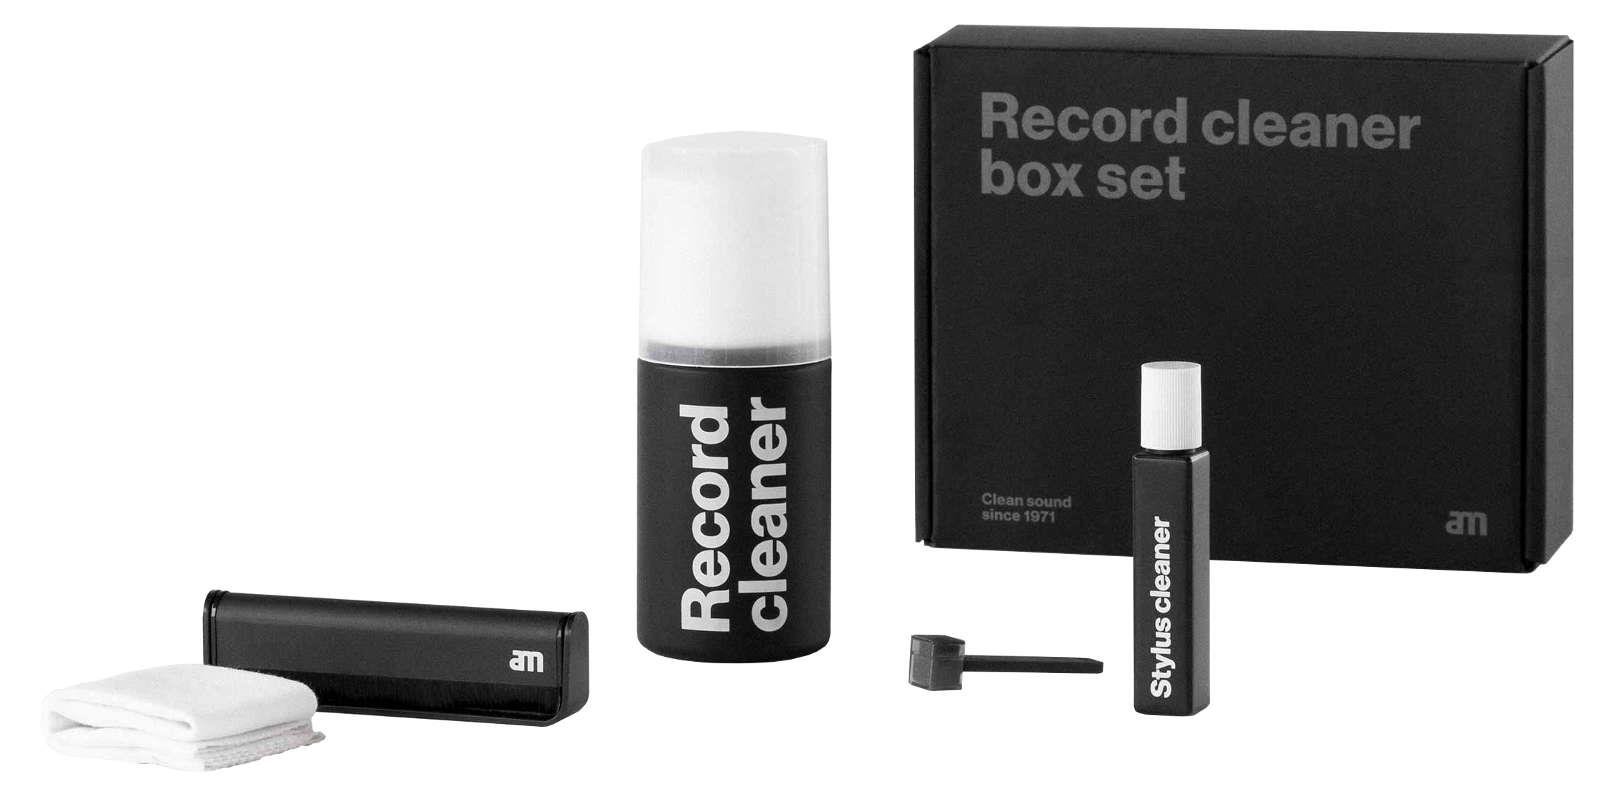 Image of AM Clean Sound Record Cleaner Box Set 5701289020219